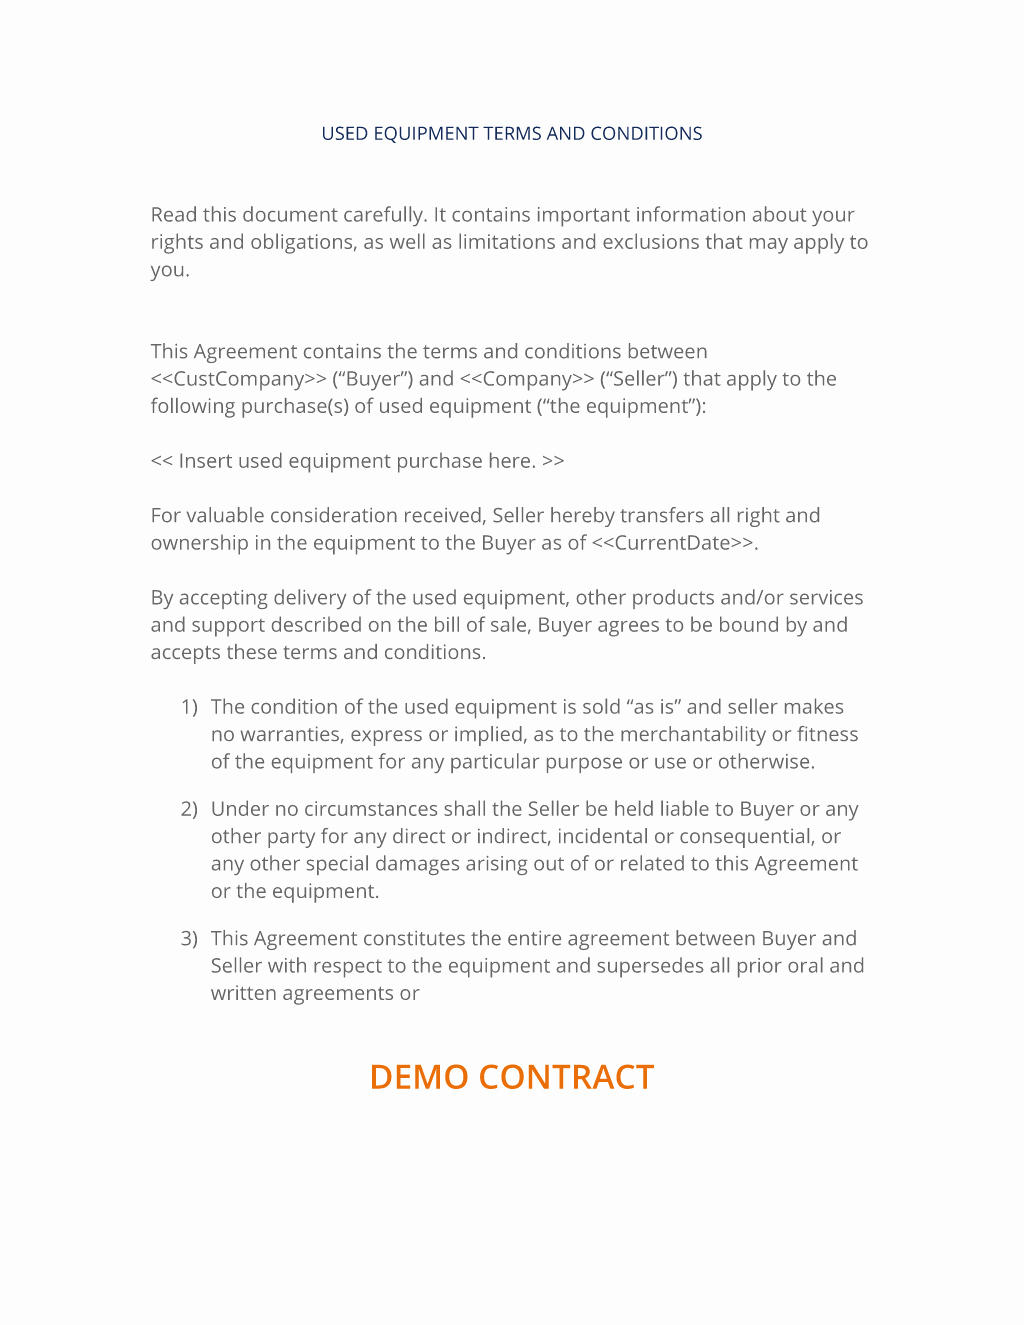 Equipment Purchase Agreement Template Unique Sale Of Used Equipment Terms and Conditions 3 Easy Steps